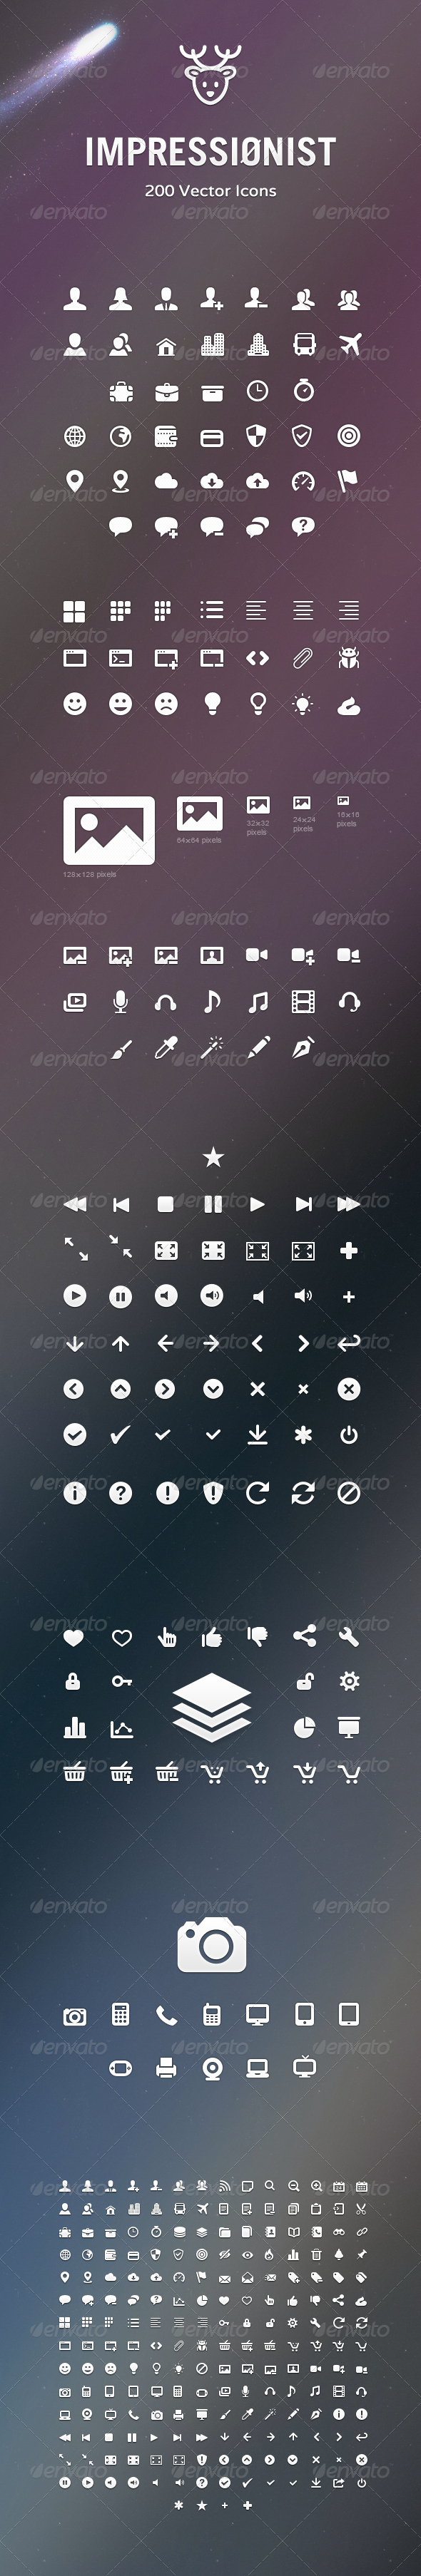 GraphicRiver Impressionist Icons Vector Icons Pack 3310094